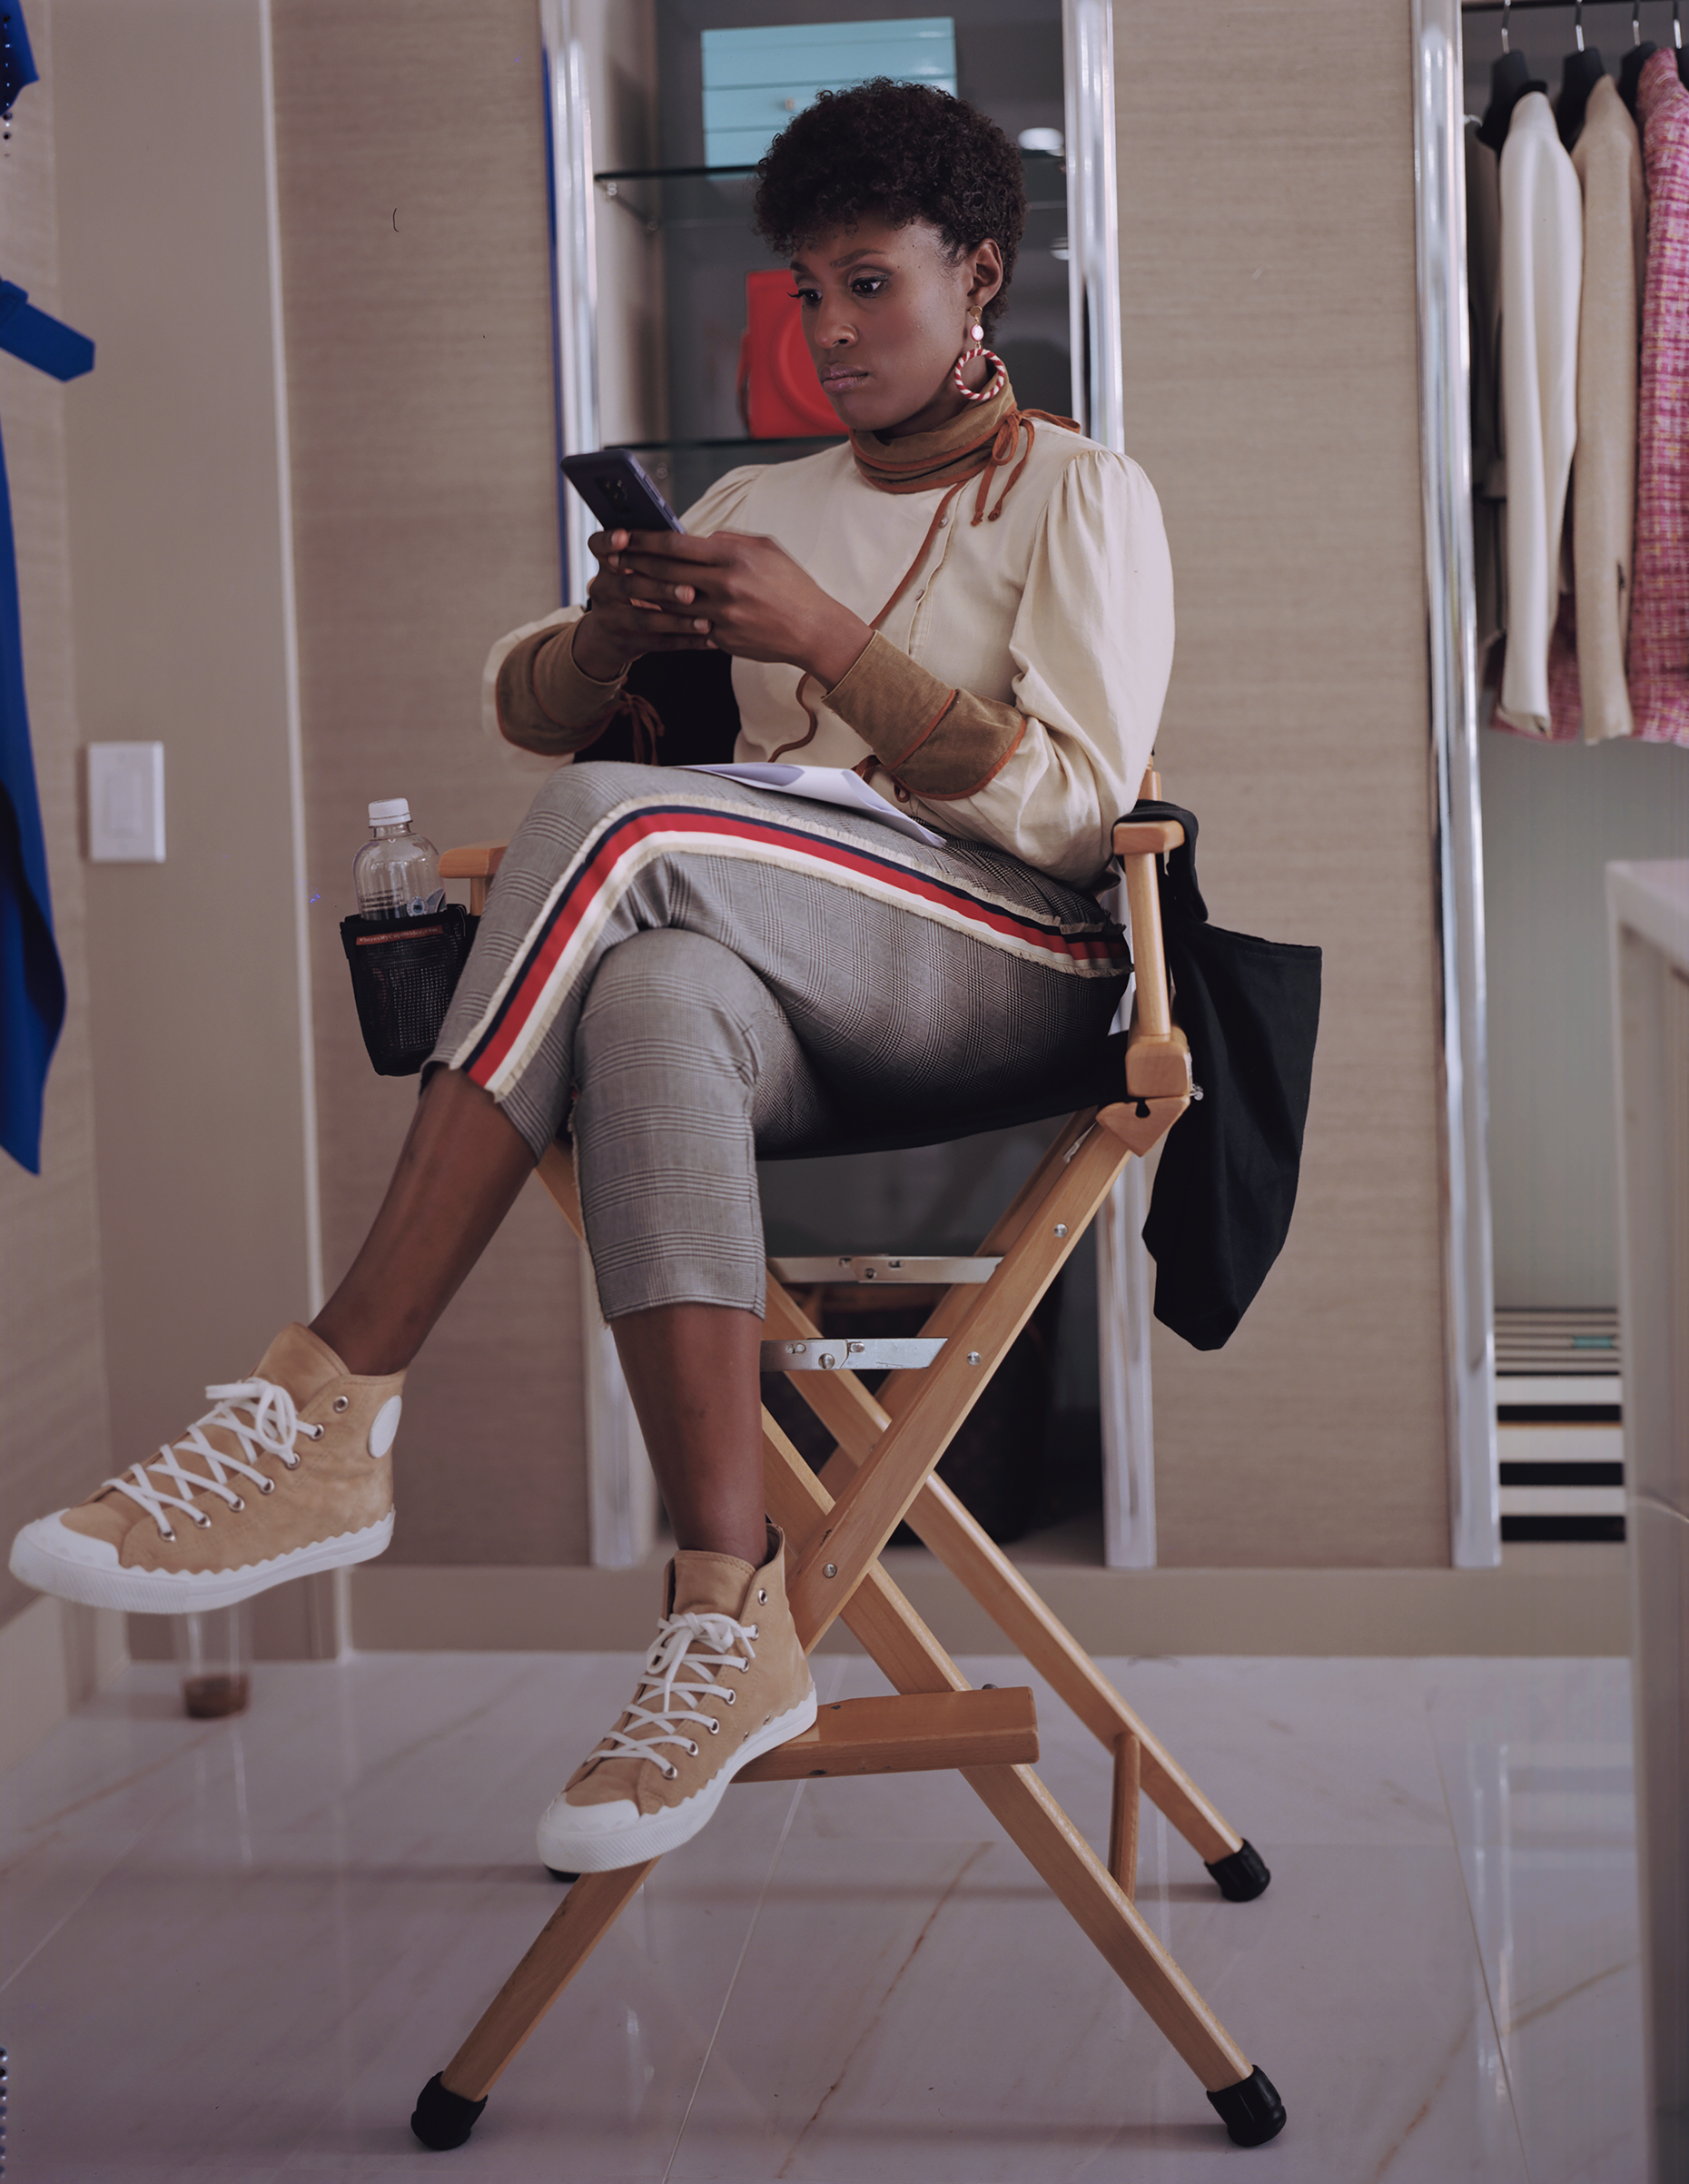 Issa Rae looks over her script on the set of Universal Pictures' Little. Marsai Martin is executive-producing with Will Packer, who has grossed some $500 million at the box office with other Georgia-based films like Ride Along, No Good Deed and Stomp the Yard.